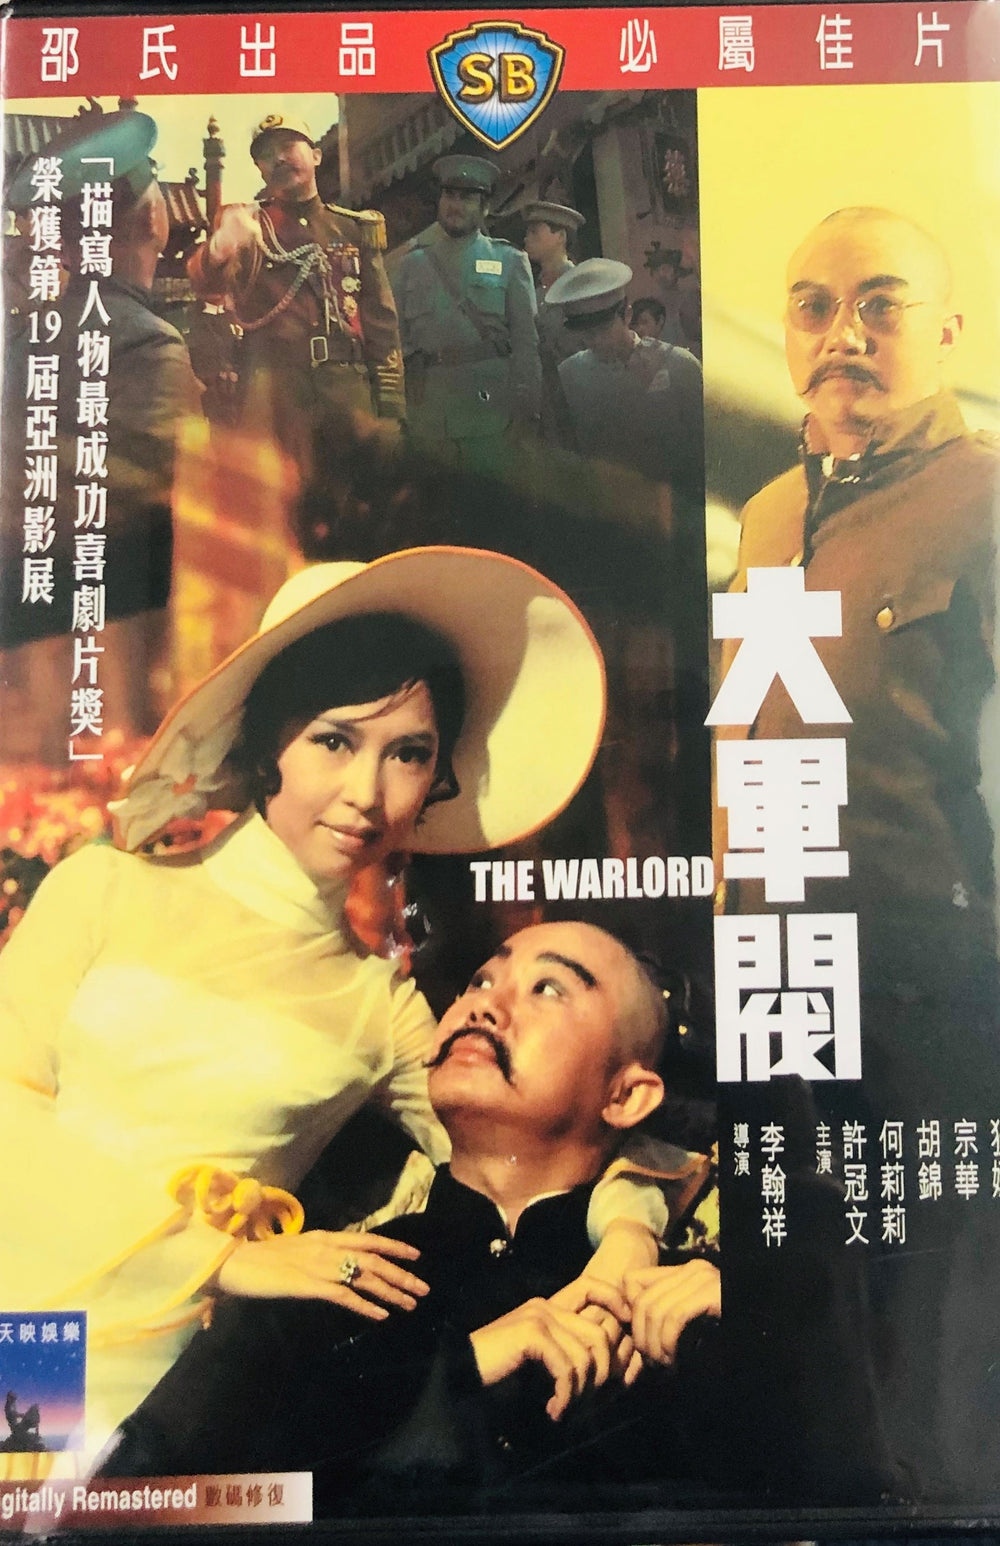 THE WARLORD 大軍閥 1972 (Shaw Bros) DVD WITH ENGLISH SUBTITLES (REGION 3)